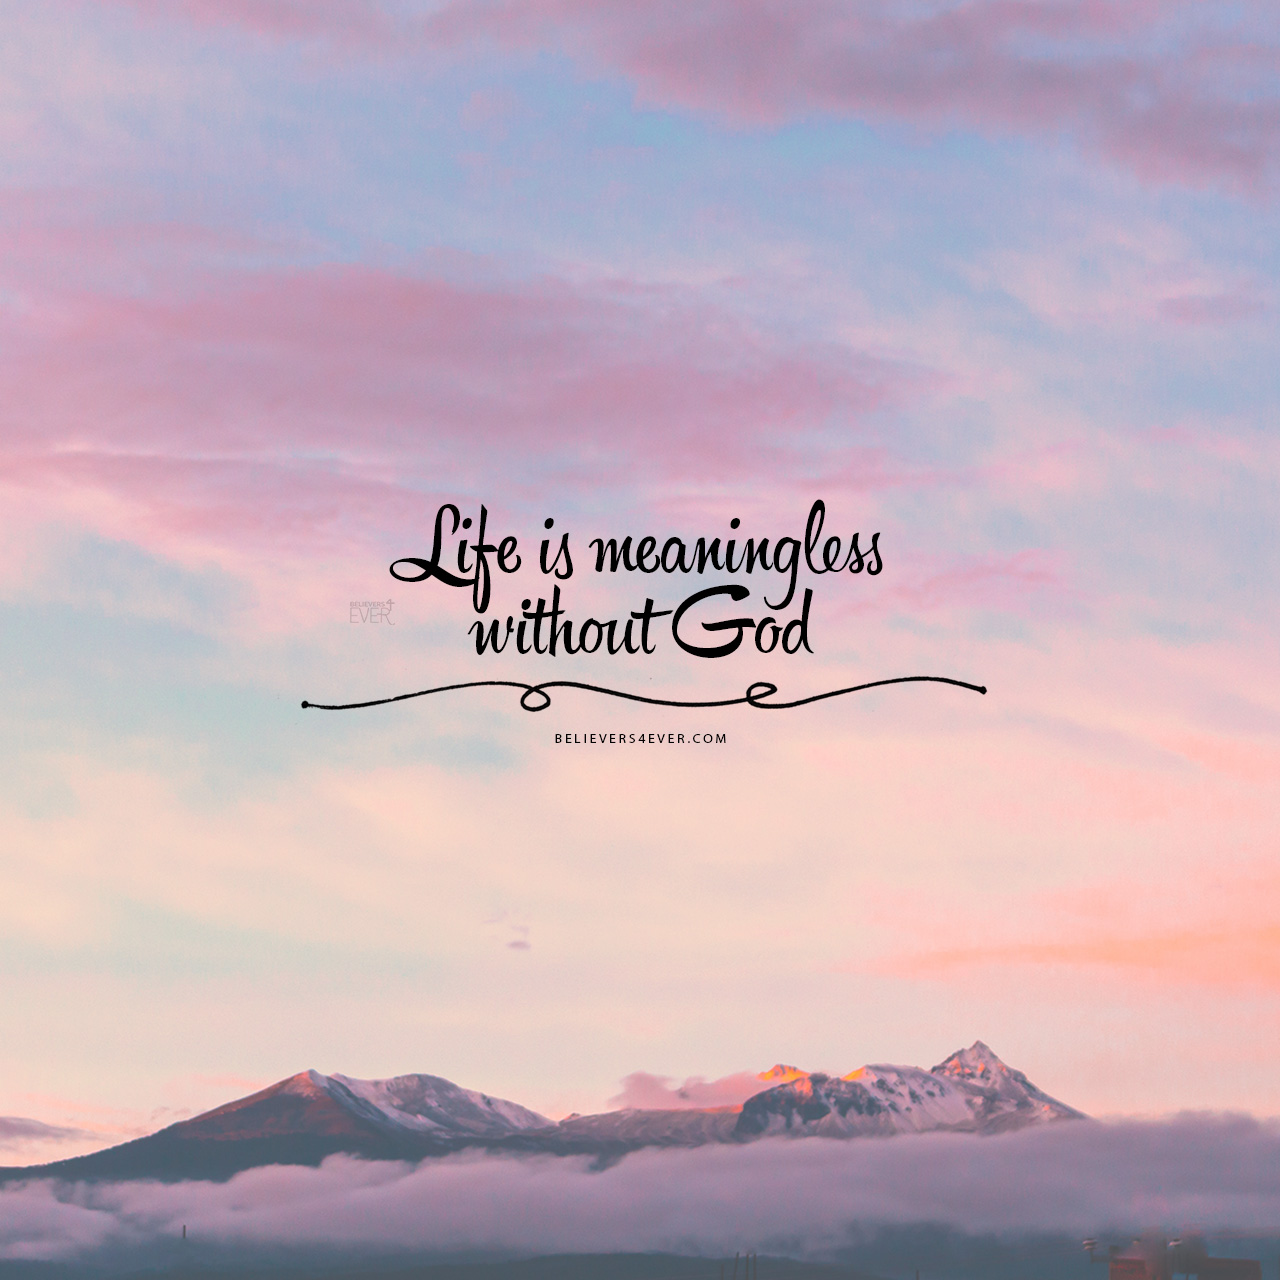 Download Free Encouragement Wallpaper Quotes Life Is Meaningless Without God Believers4ever Com